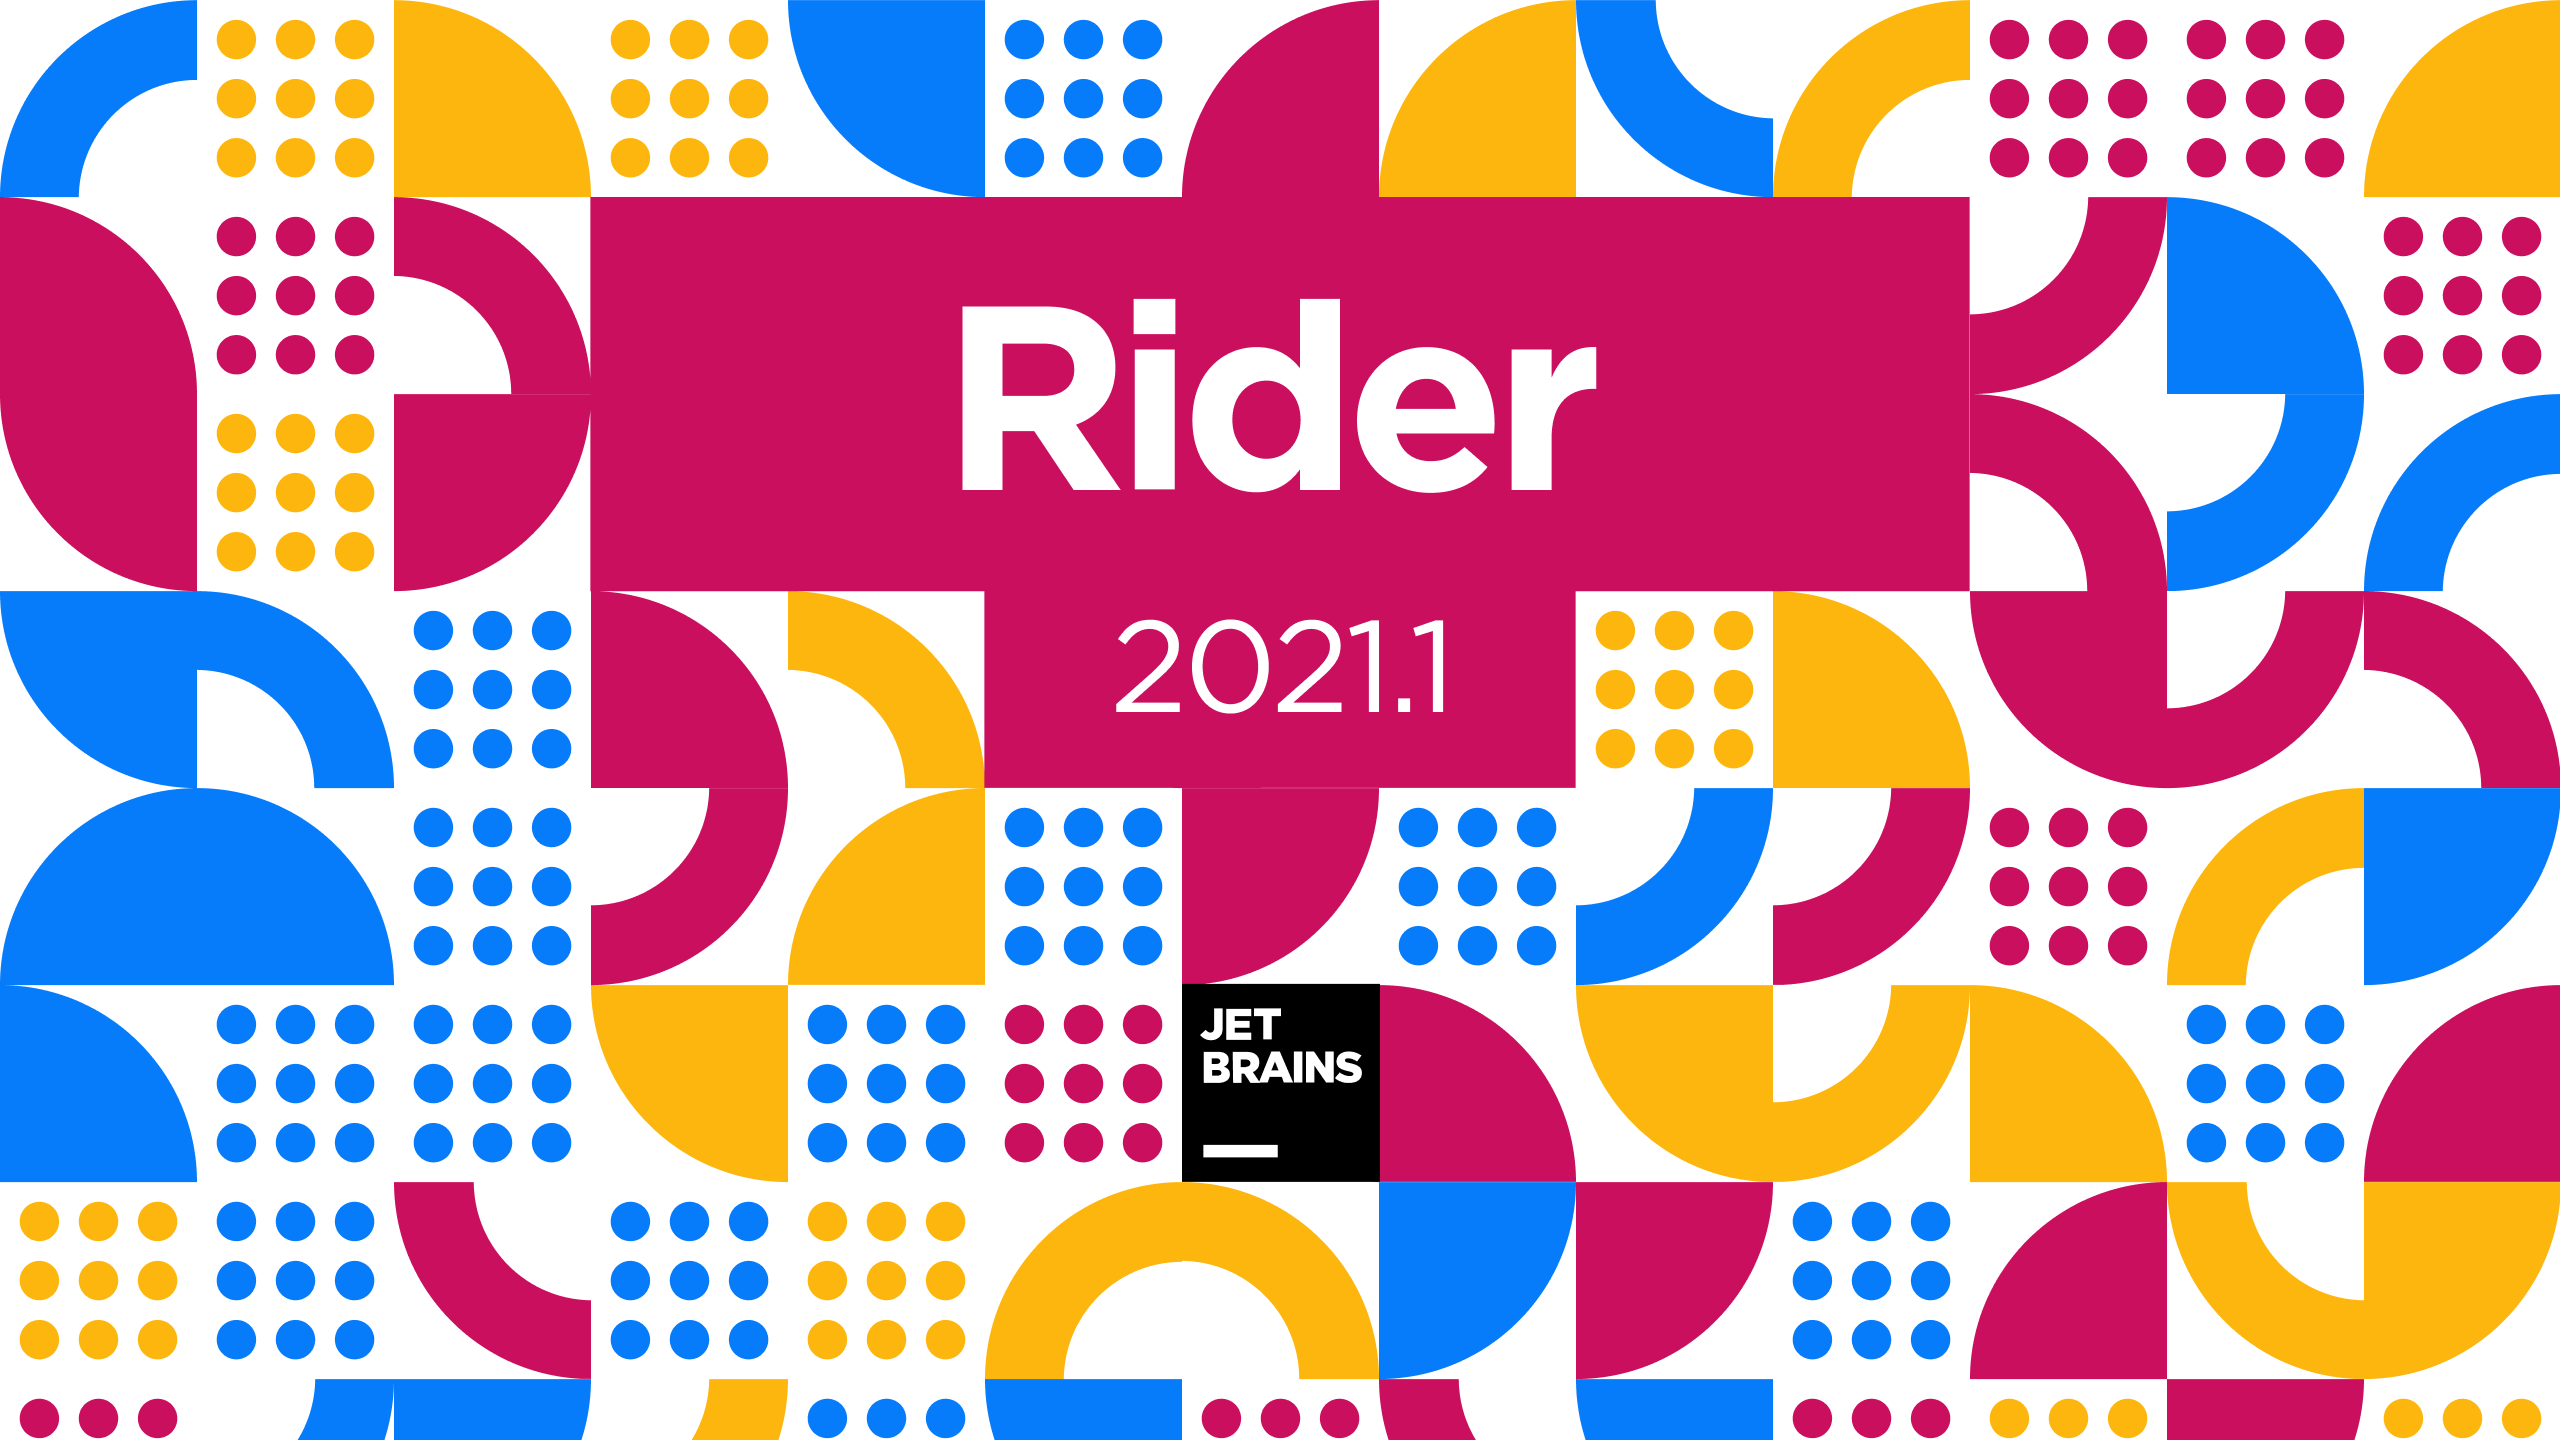 Rider 2021.1: Updates to Docker and C# Support, Scaffolding in ASP.NET, and More!